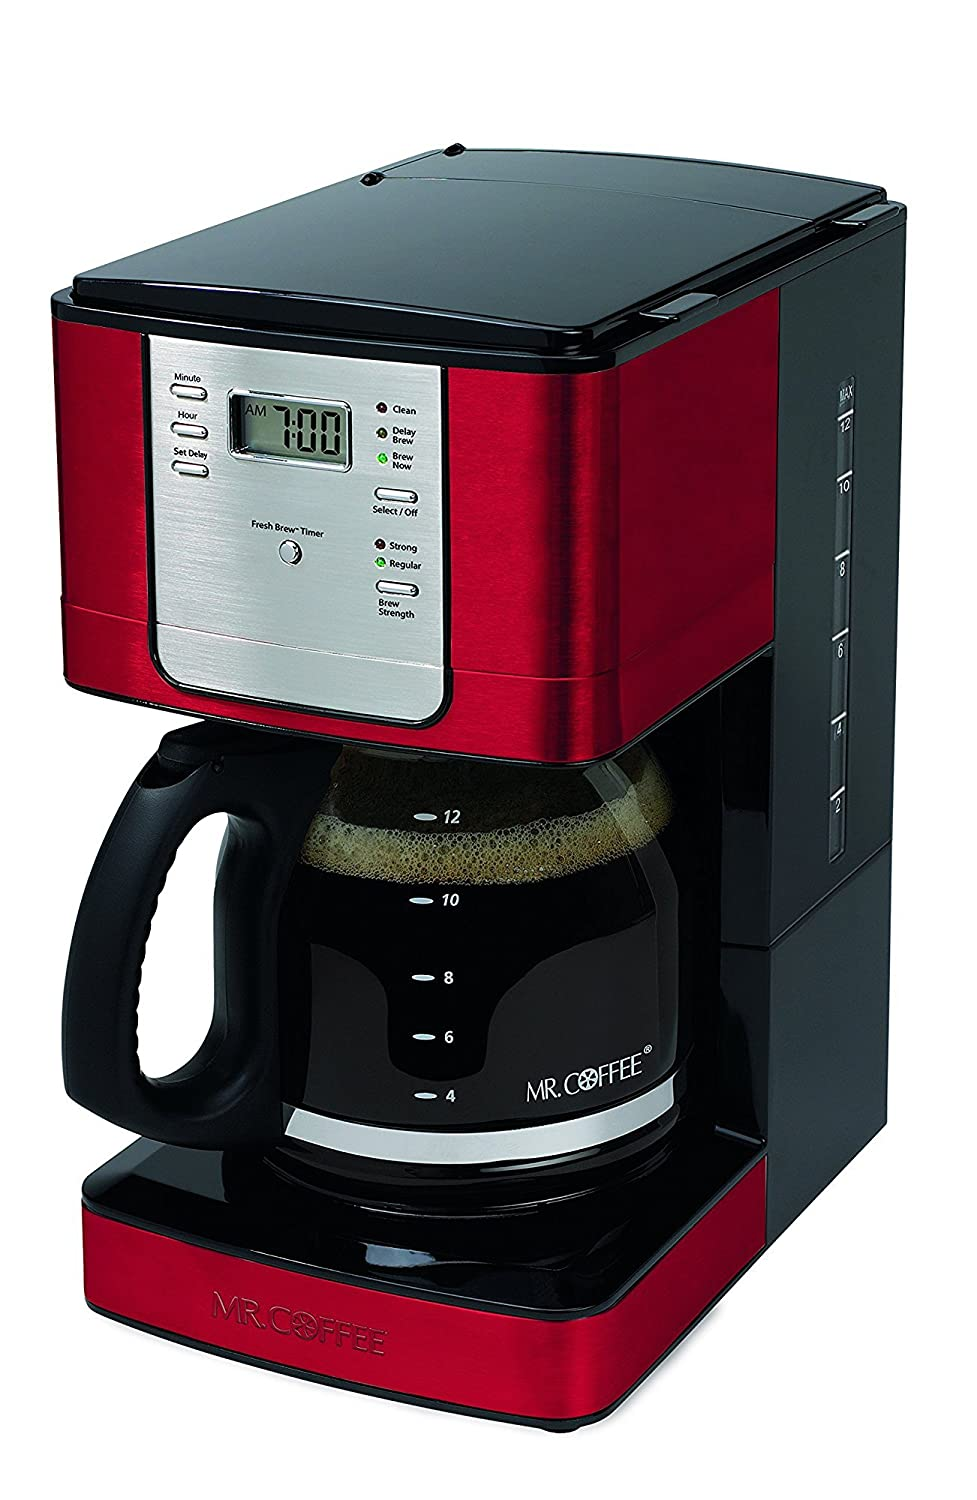 Mr. Coffee JWX36-RB Advanced Brew 12-Cup Programmable Coffee Maker, Red